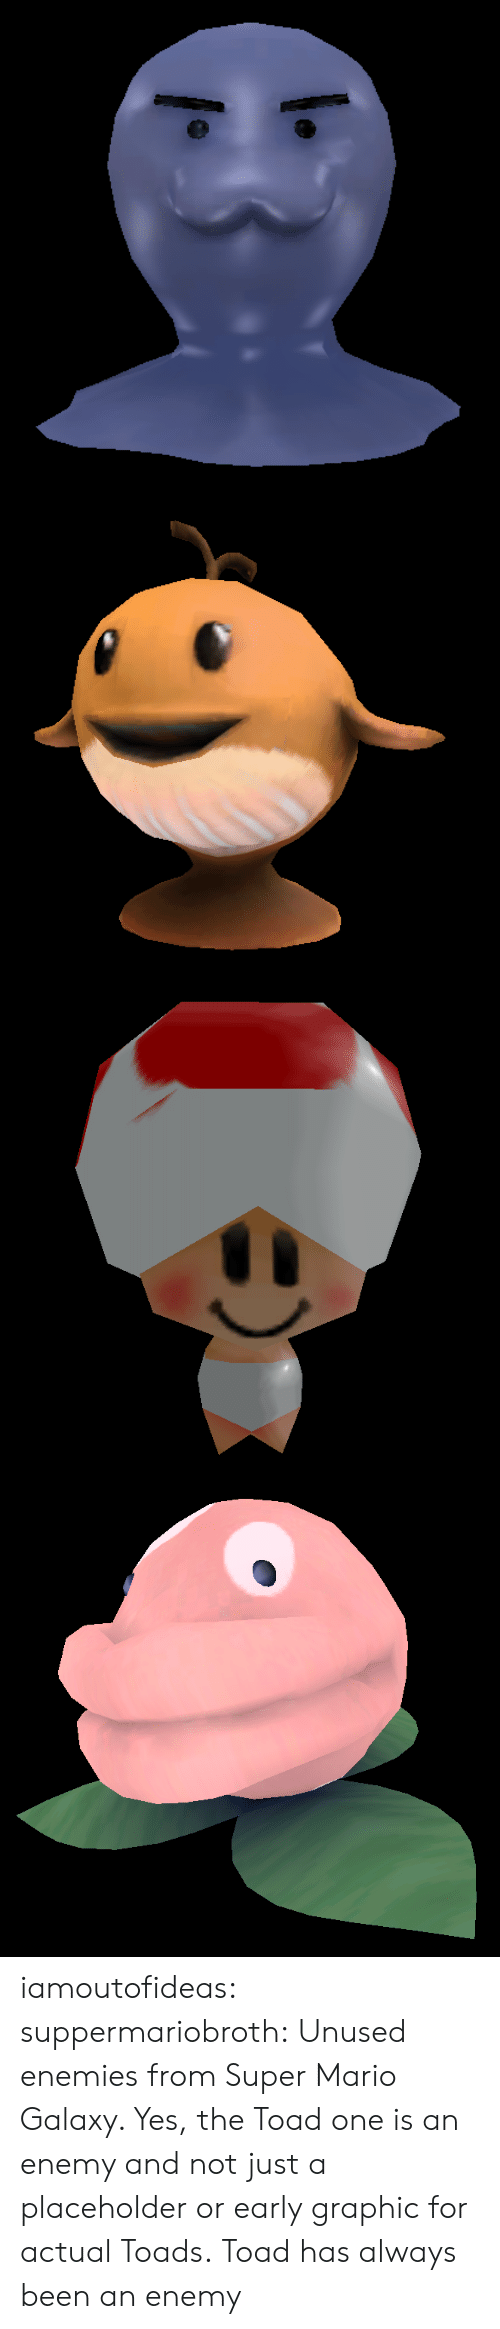 toads: iamoutofideas: suppermariobroth: Unused enemies from Super Mario Galaxy. Yes, the Toad one is an enemy and not just a placeholder or early graphic for actual Toads. Toad has always been an enemy